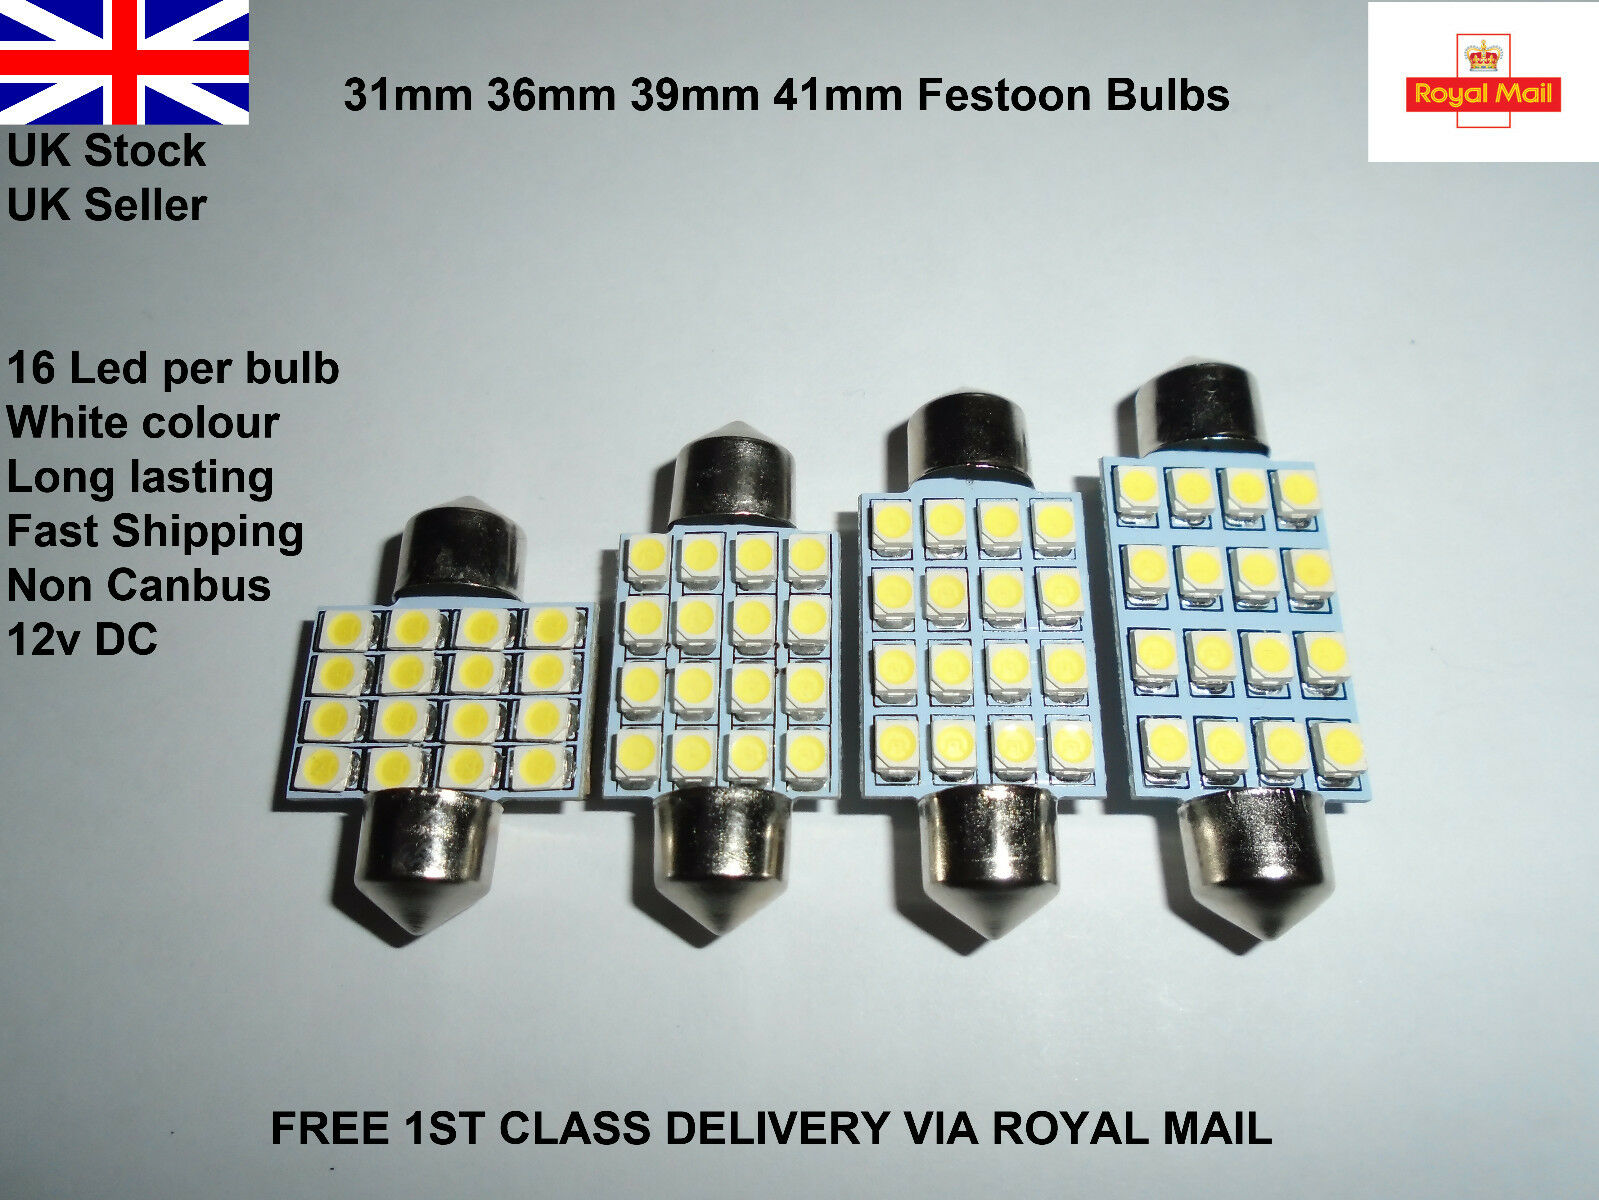 Car Parts - Car Festoon 31-42mm Led Smd c5w sv8.5 Lamp Light Bulbs Interior Hid White 12v UK